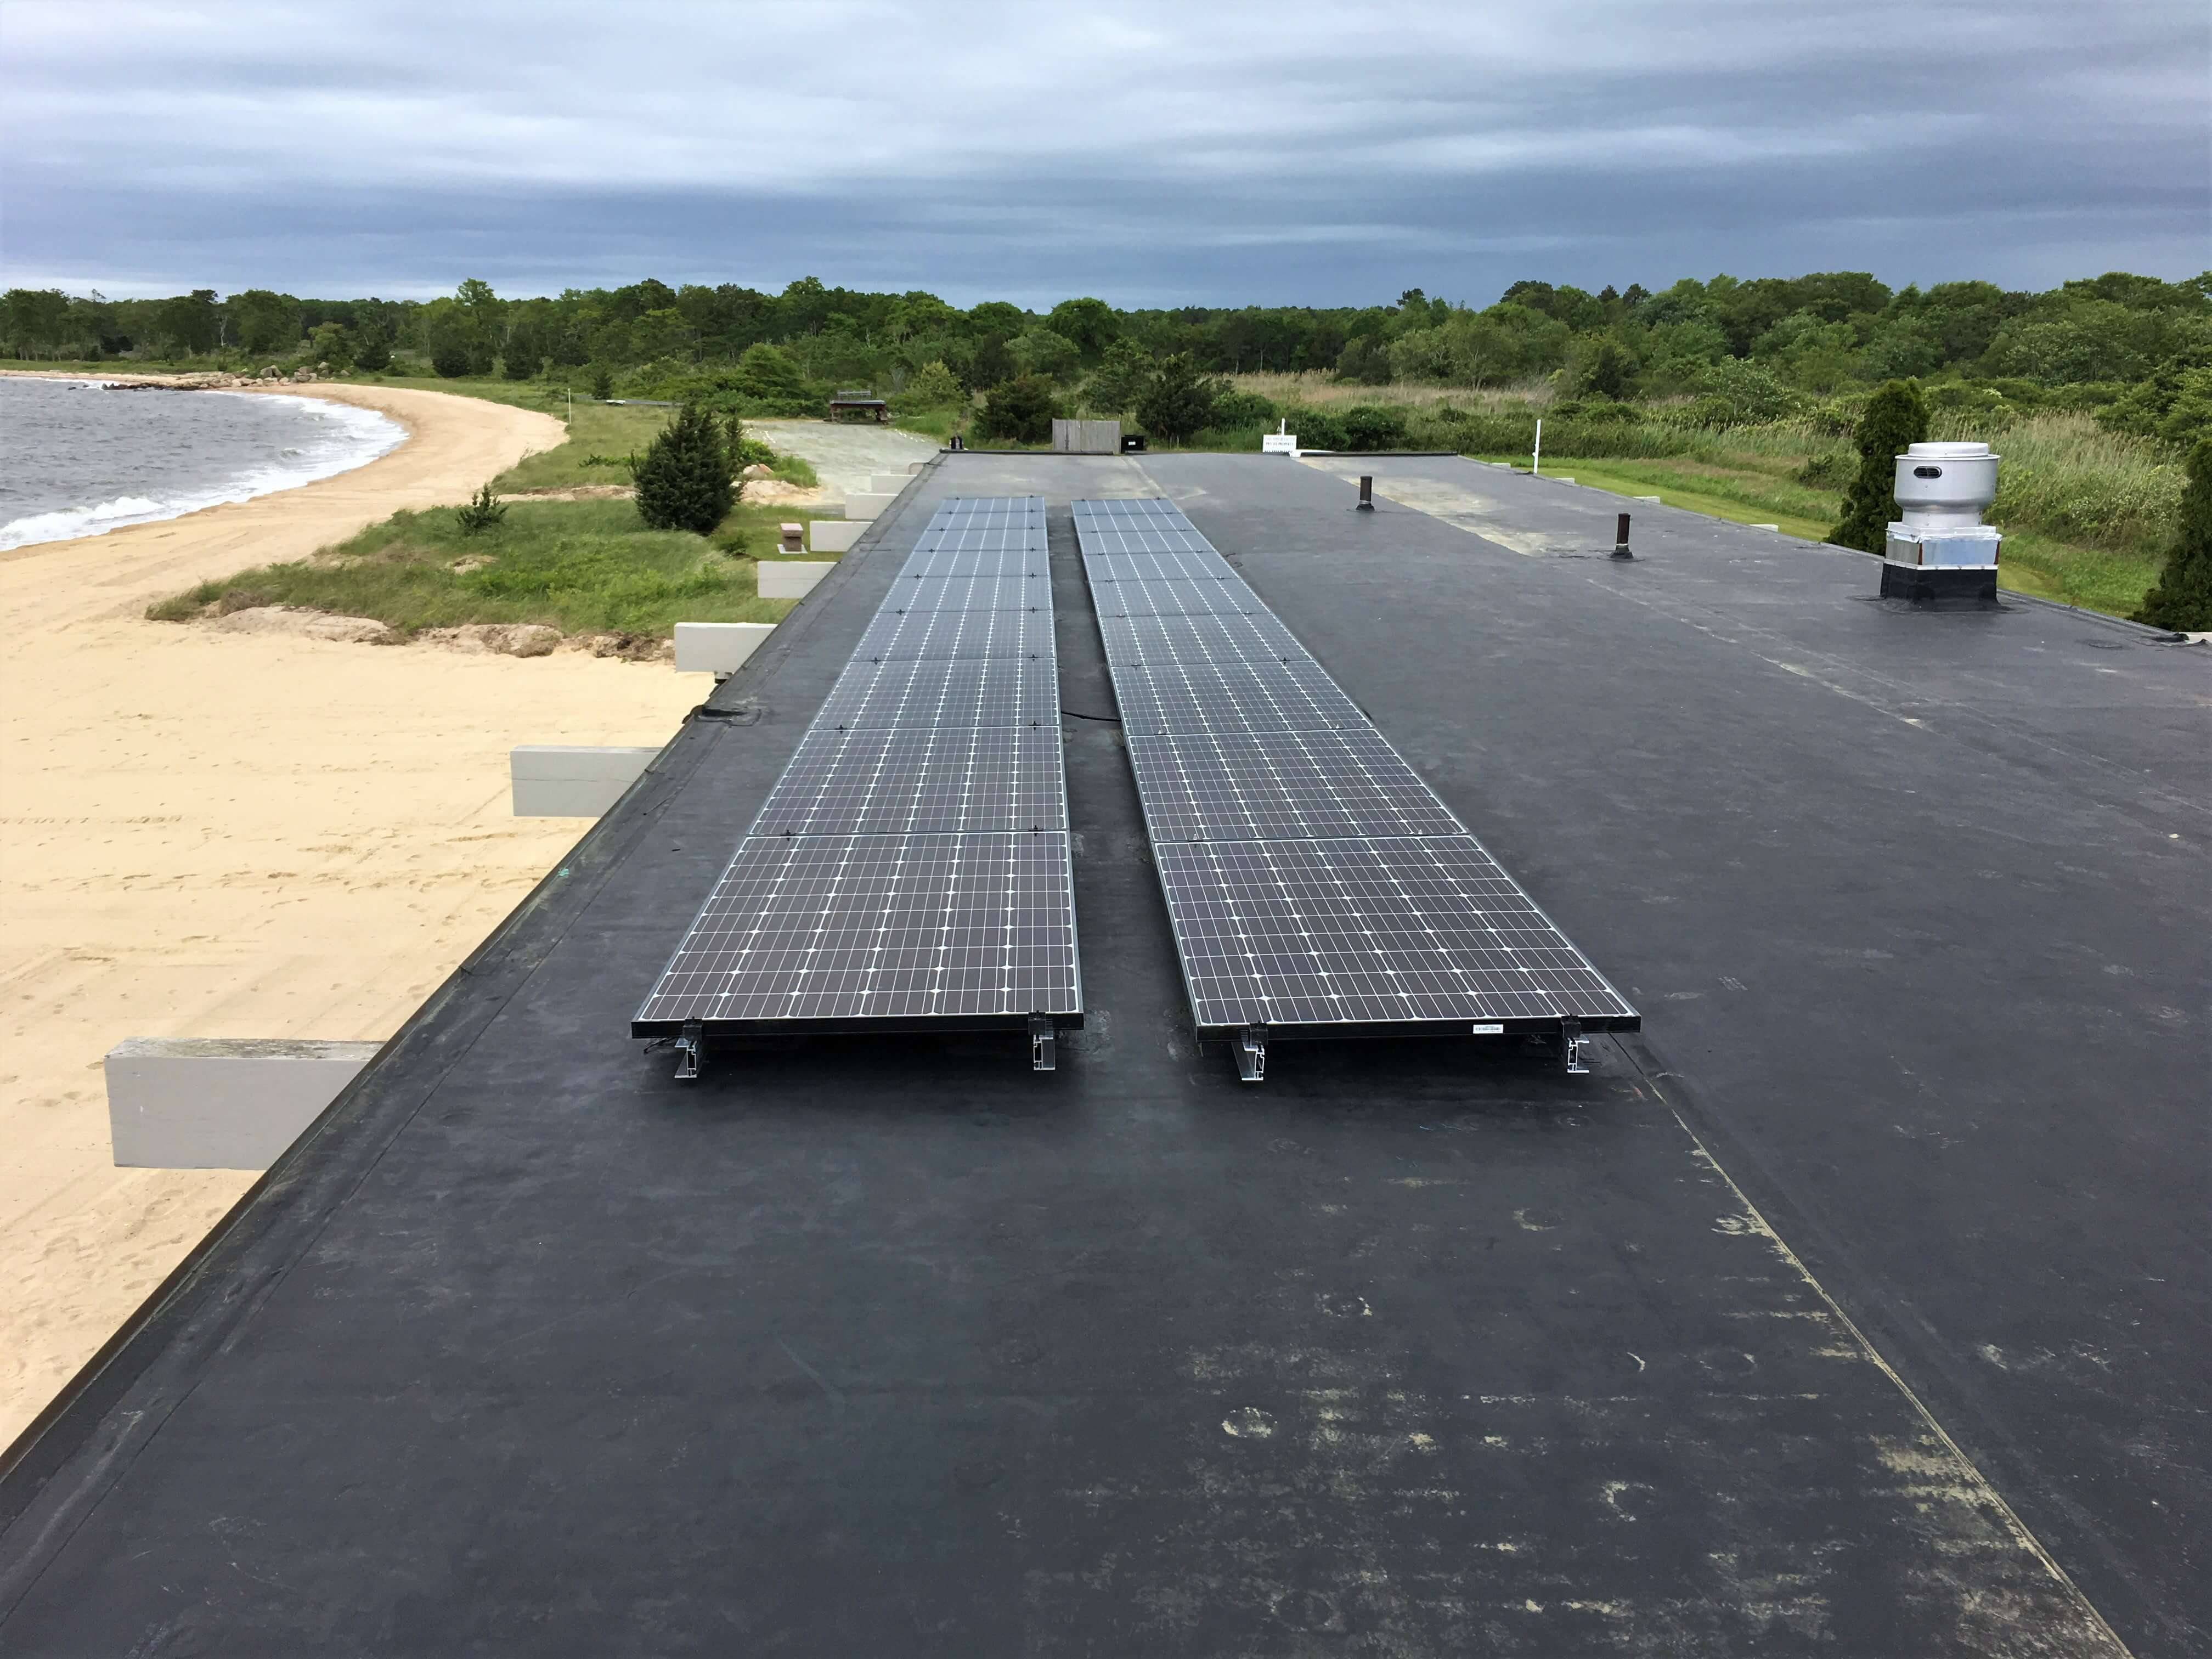 marion massachusetts south coast commercial solar installation my generation energy